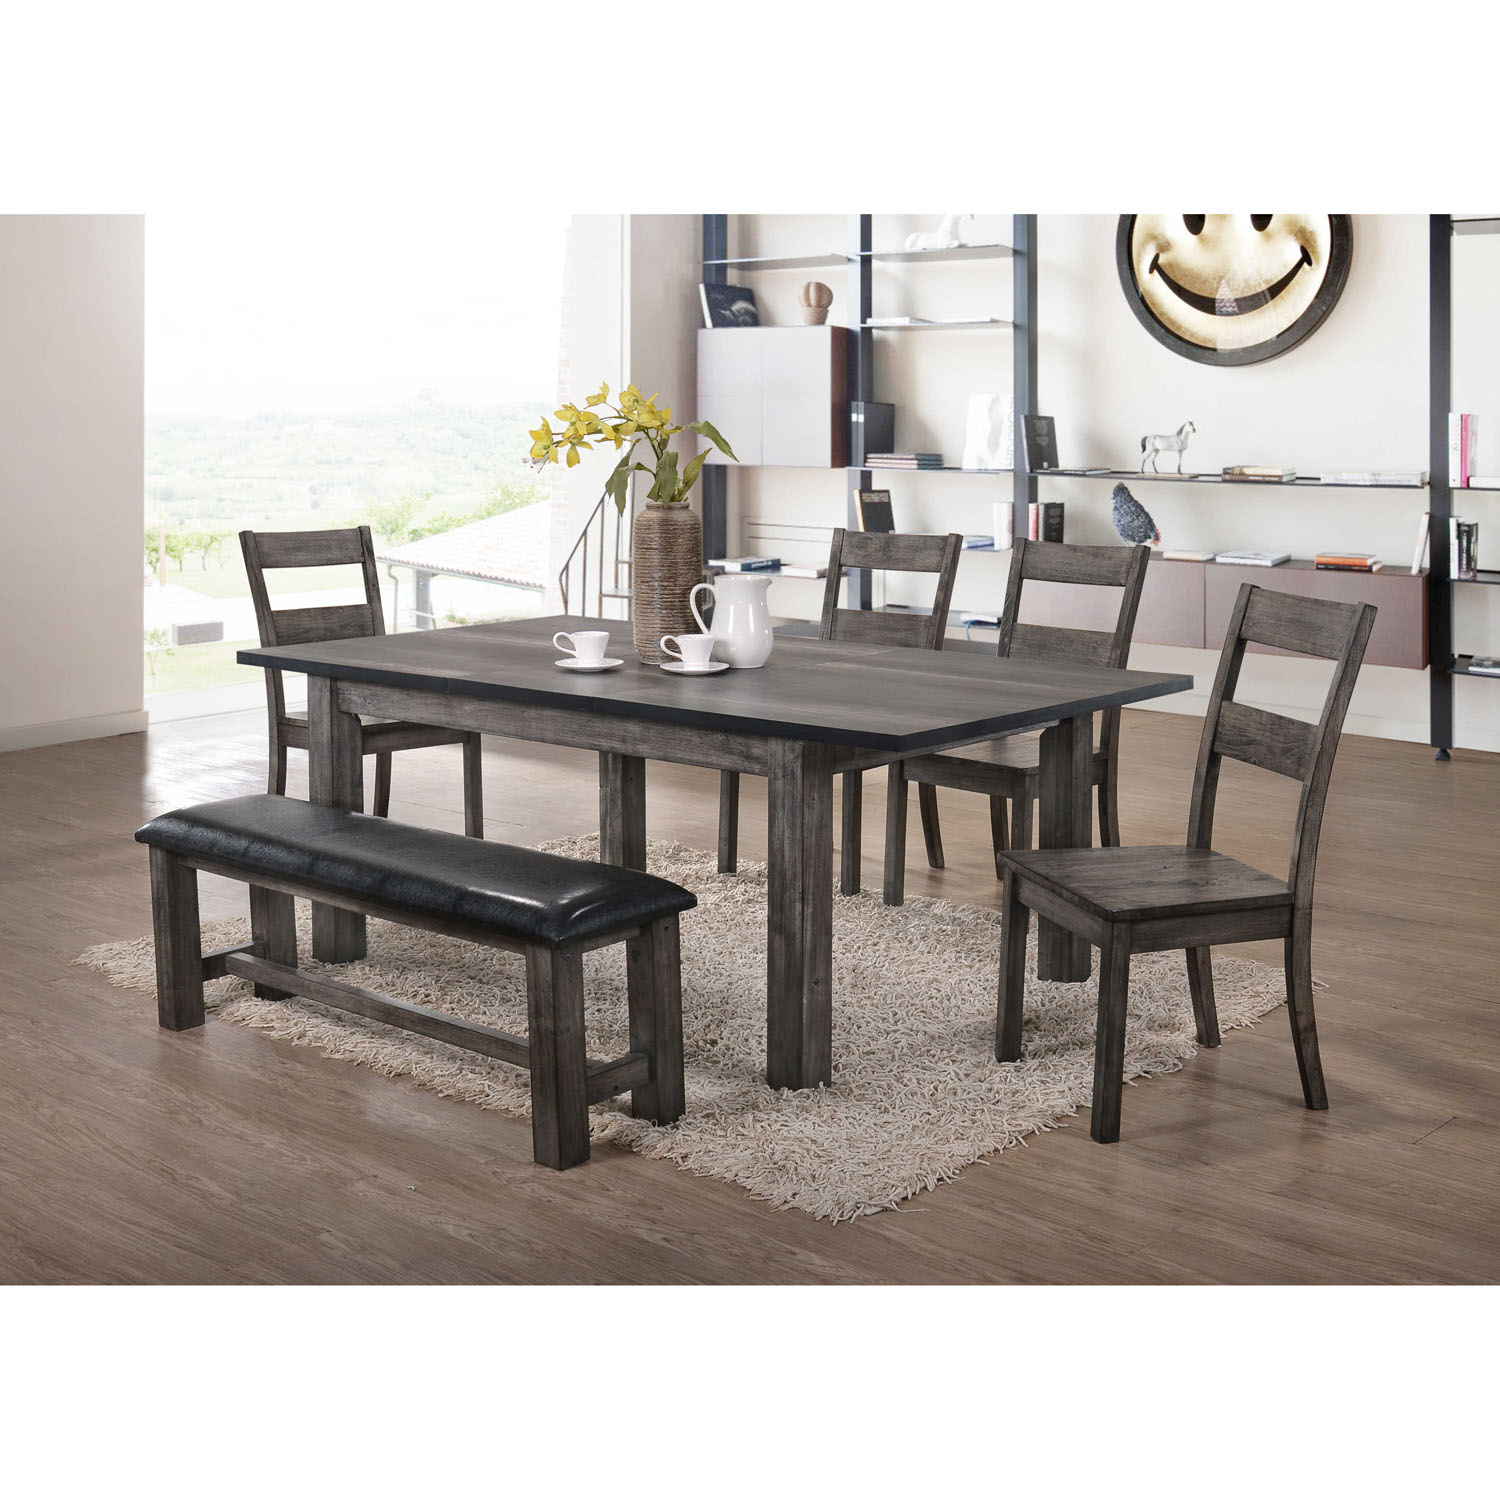 Cambridge Drexel Dining 6 Piece Set with Four Wooden Chairs and Bench